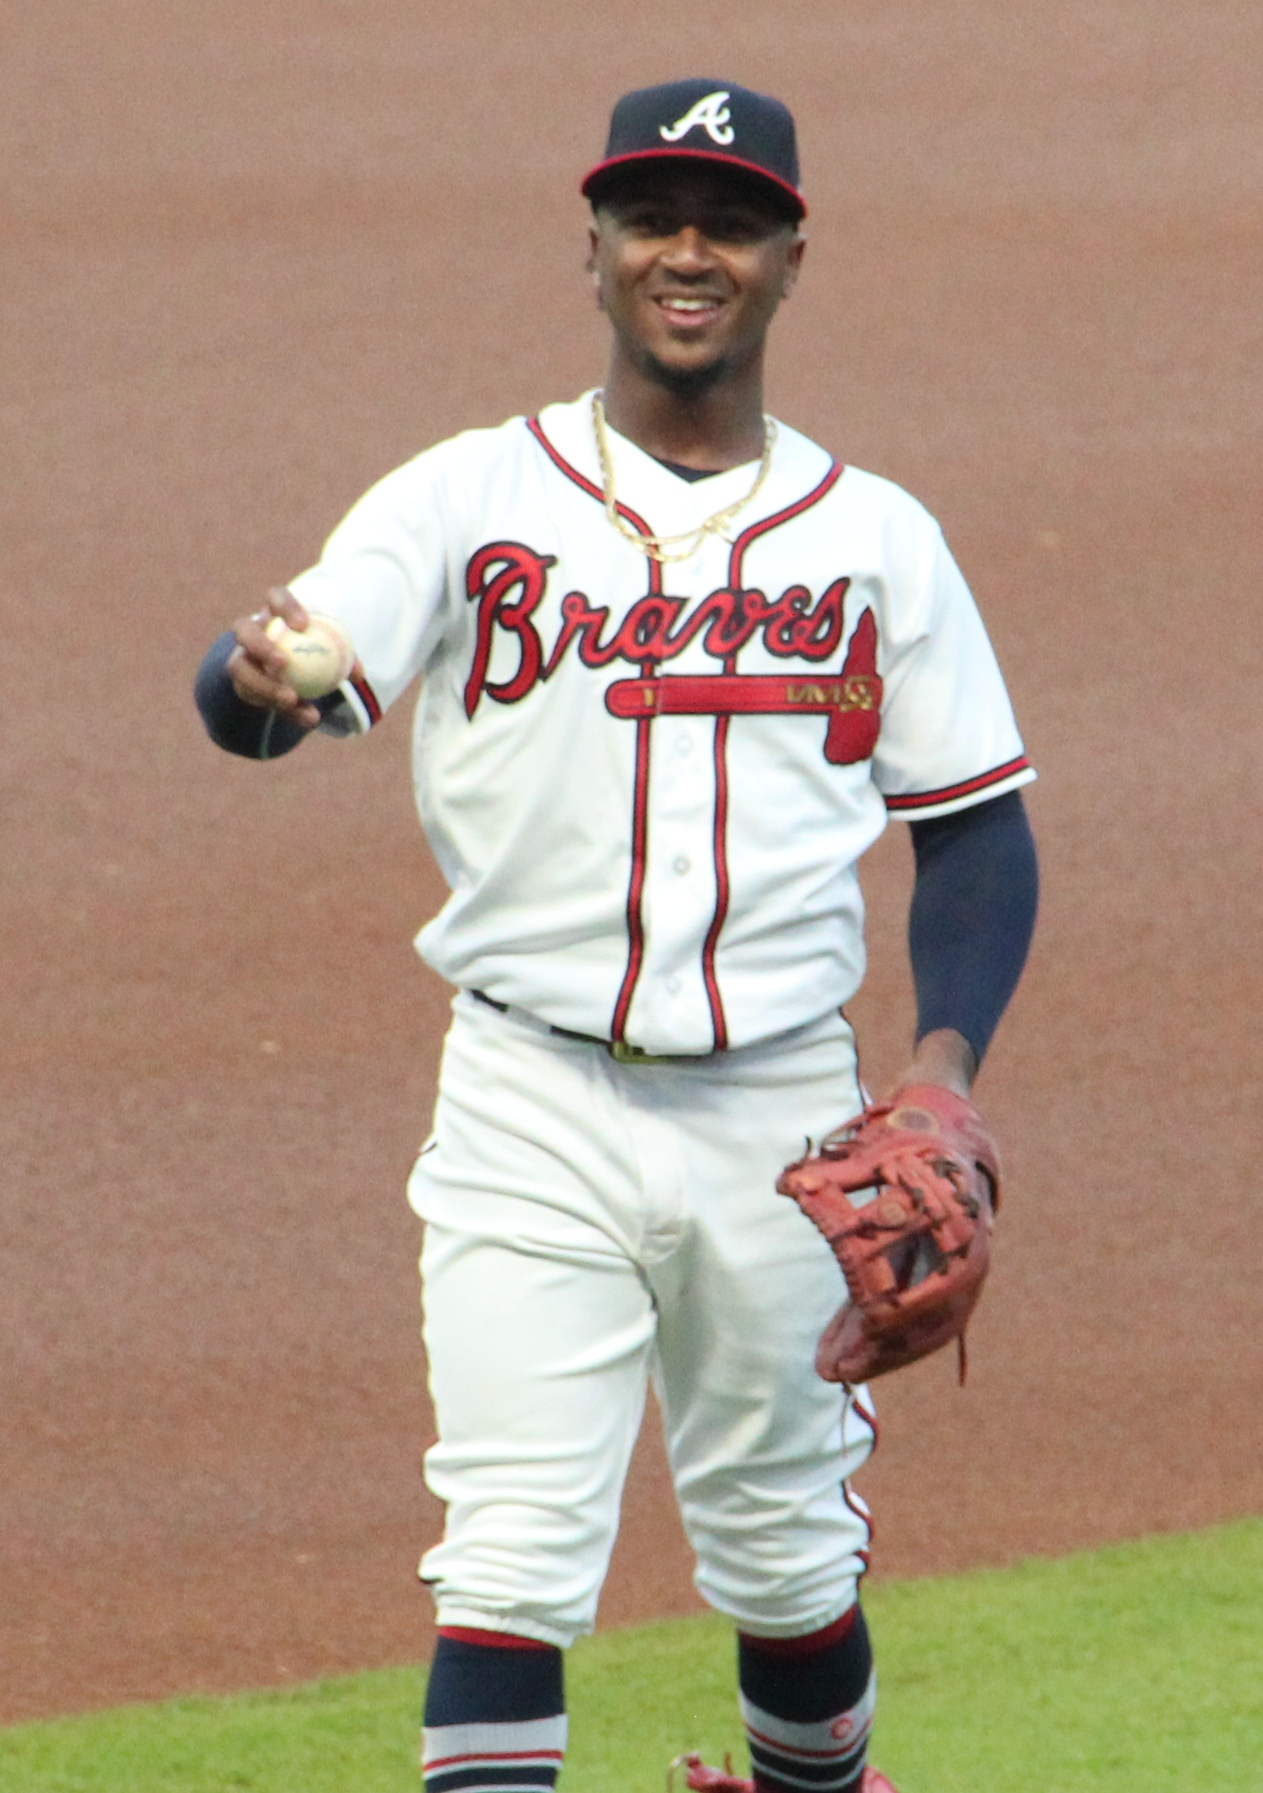 August 17, 2019 -- The Braves defeated the Dodgers at home, 4 to 3. The Braves starting pitcher was Mike Foltynewicz and top hitter was Ozzie Albies.